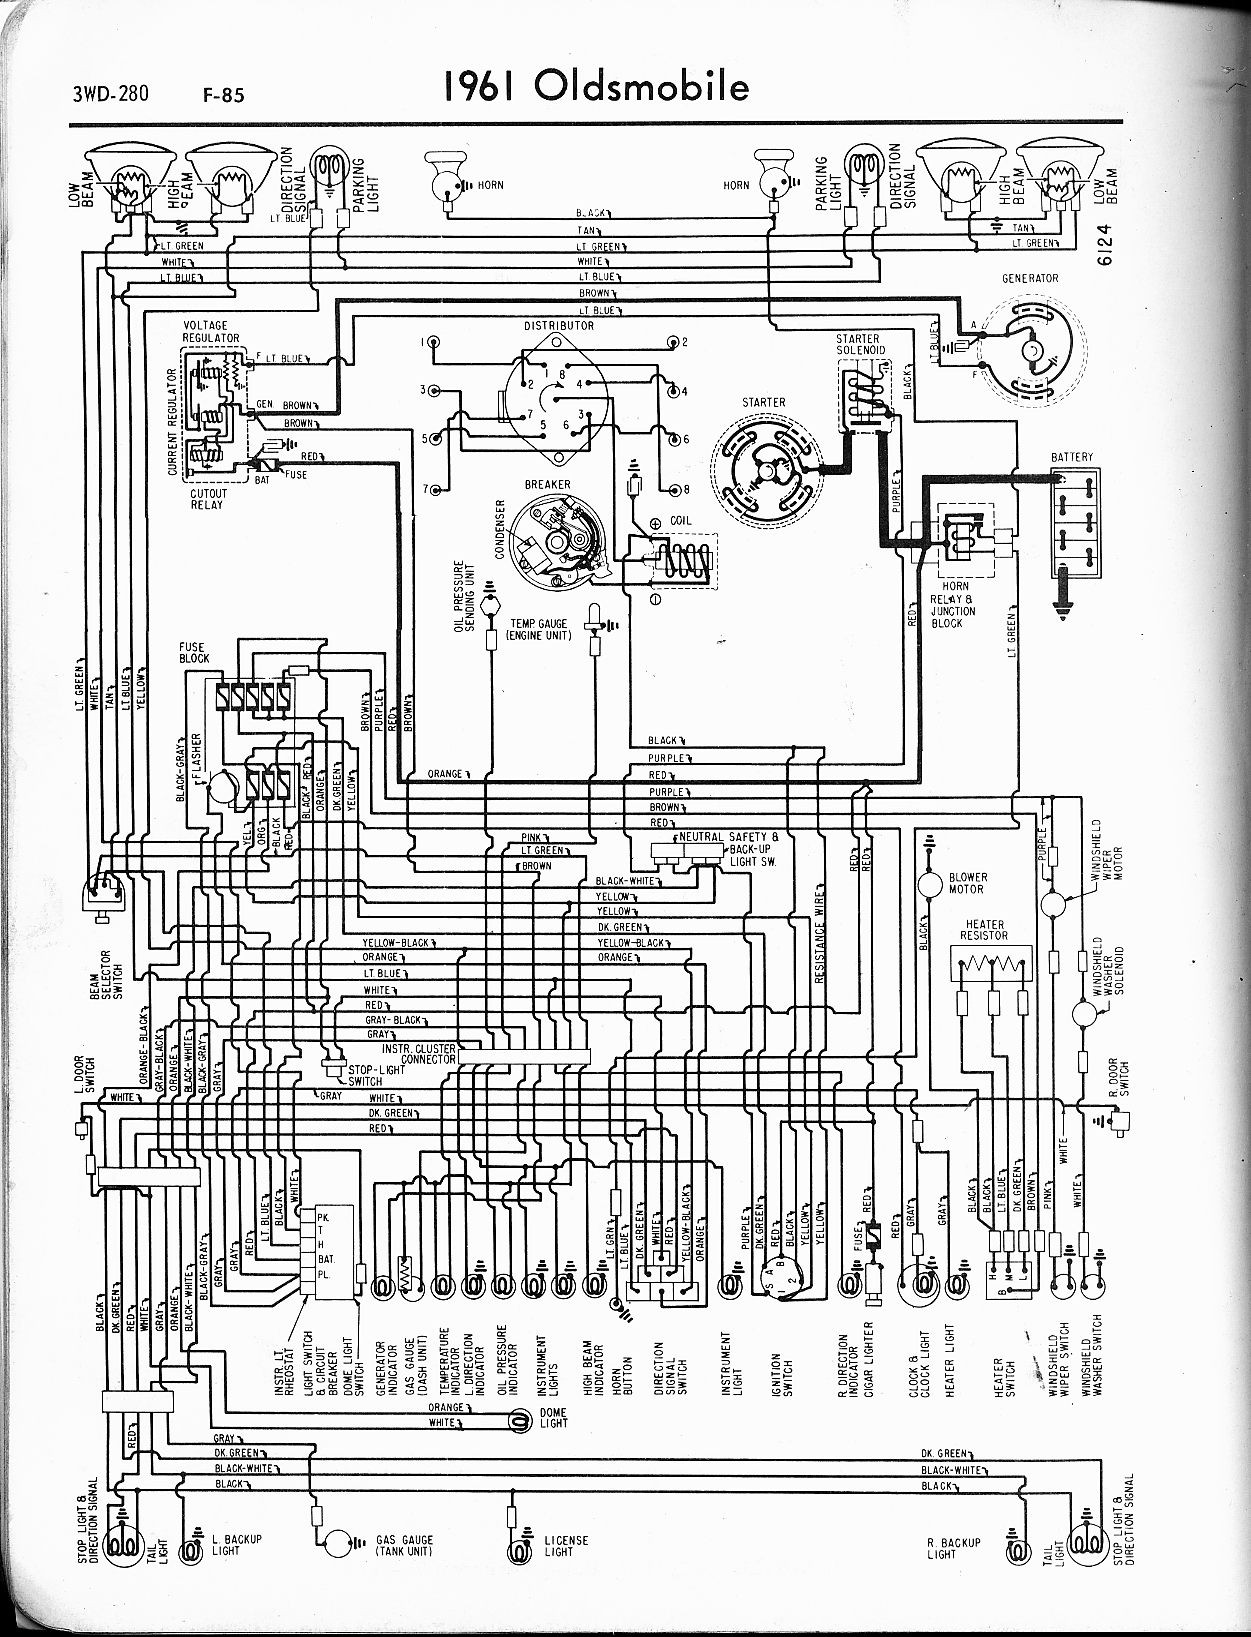 1968 Olds Wiring Diagram Example Electrical Okr T 10 Schematics Diagrams 1970 442 Harness Library U2022 Rh Wiringhero Today Oldsmobile Cutlass Residential